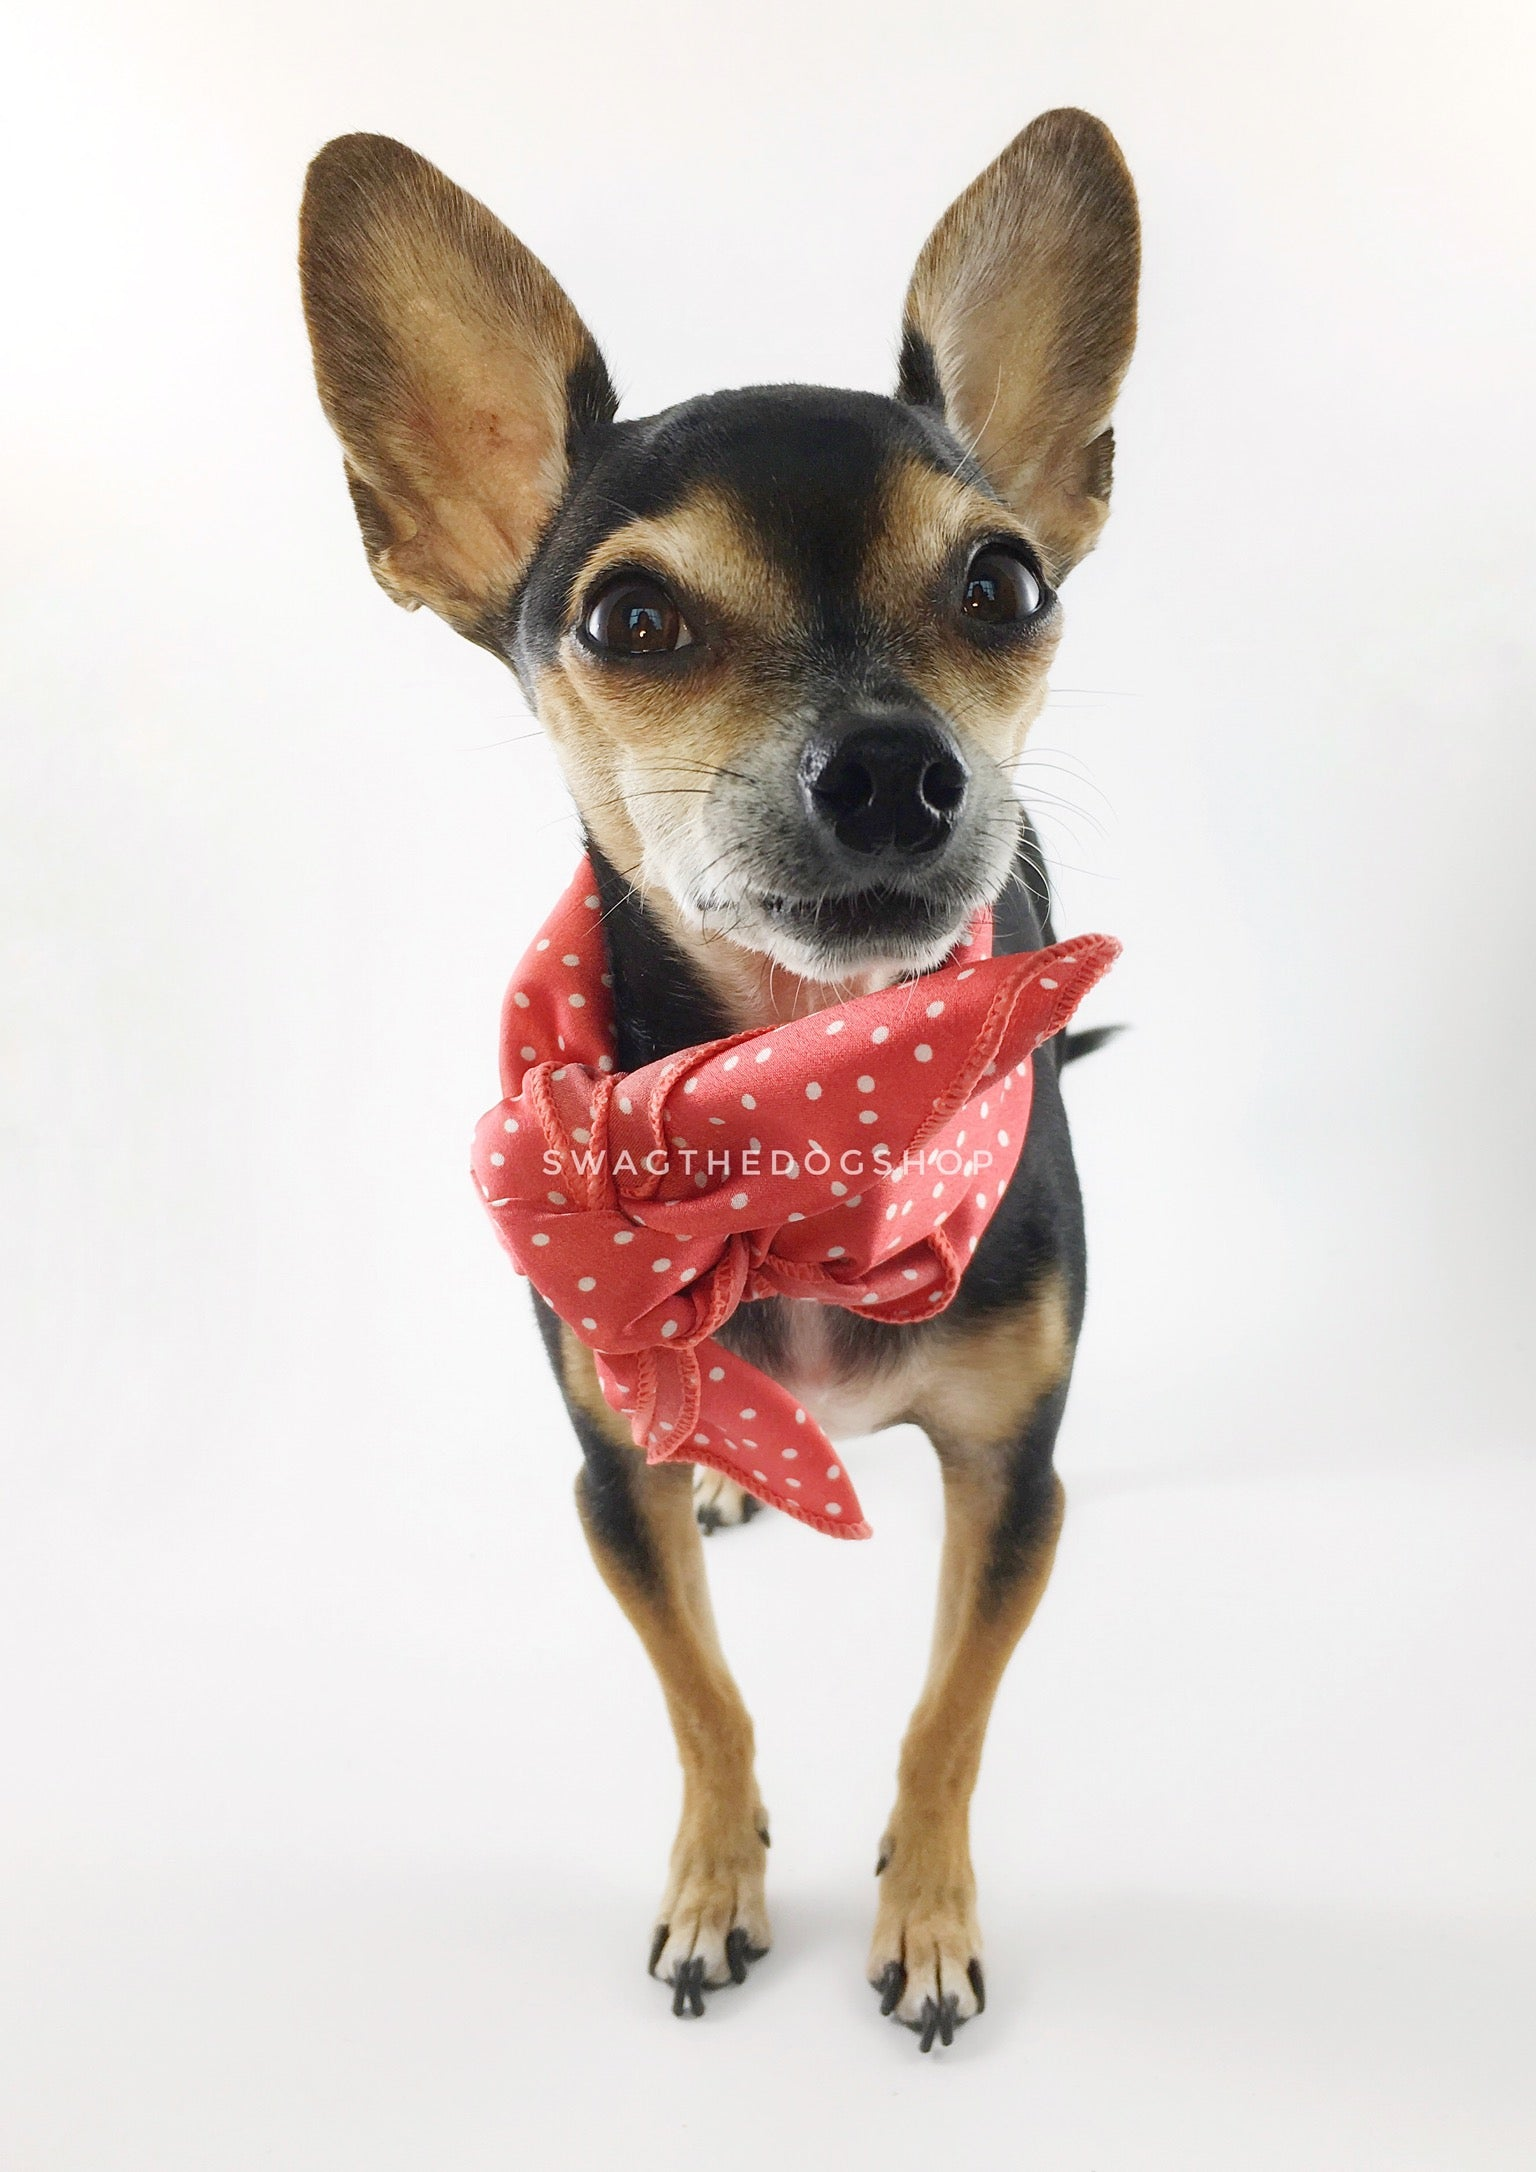 Polka Itty Bitty Coral Swagdana Scarf - Full Frontal View of Cute Chihuahua Wearing Swagdana Scarf as Neck Scarf. Dog Bandana. Dog Scarf.